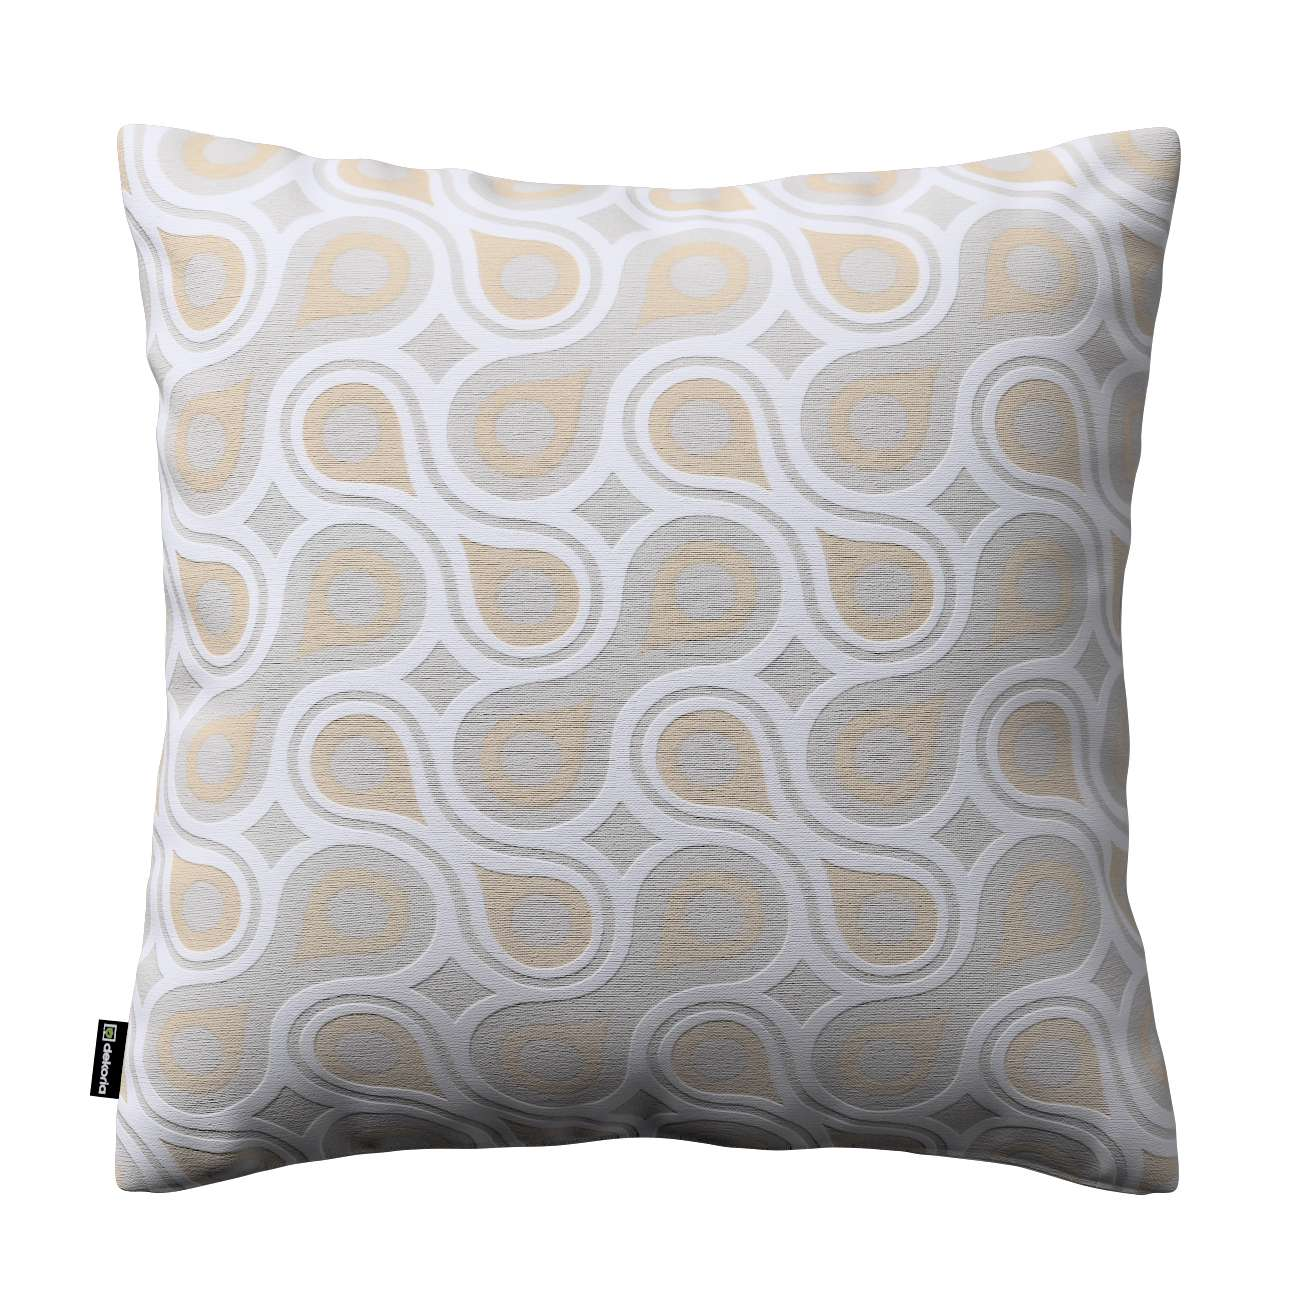 Kinga cushion cover 43 x 43 cm (17 x 17 inch) in collection Flowers, fabric: 311-11